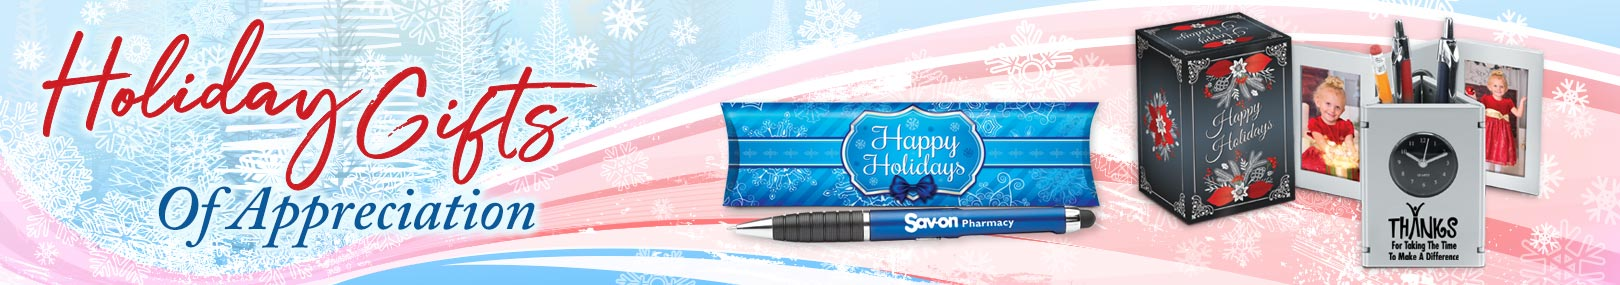 Holiday Modern Office Gifts from Positive Promotions